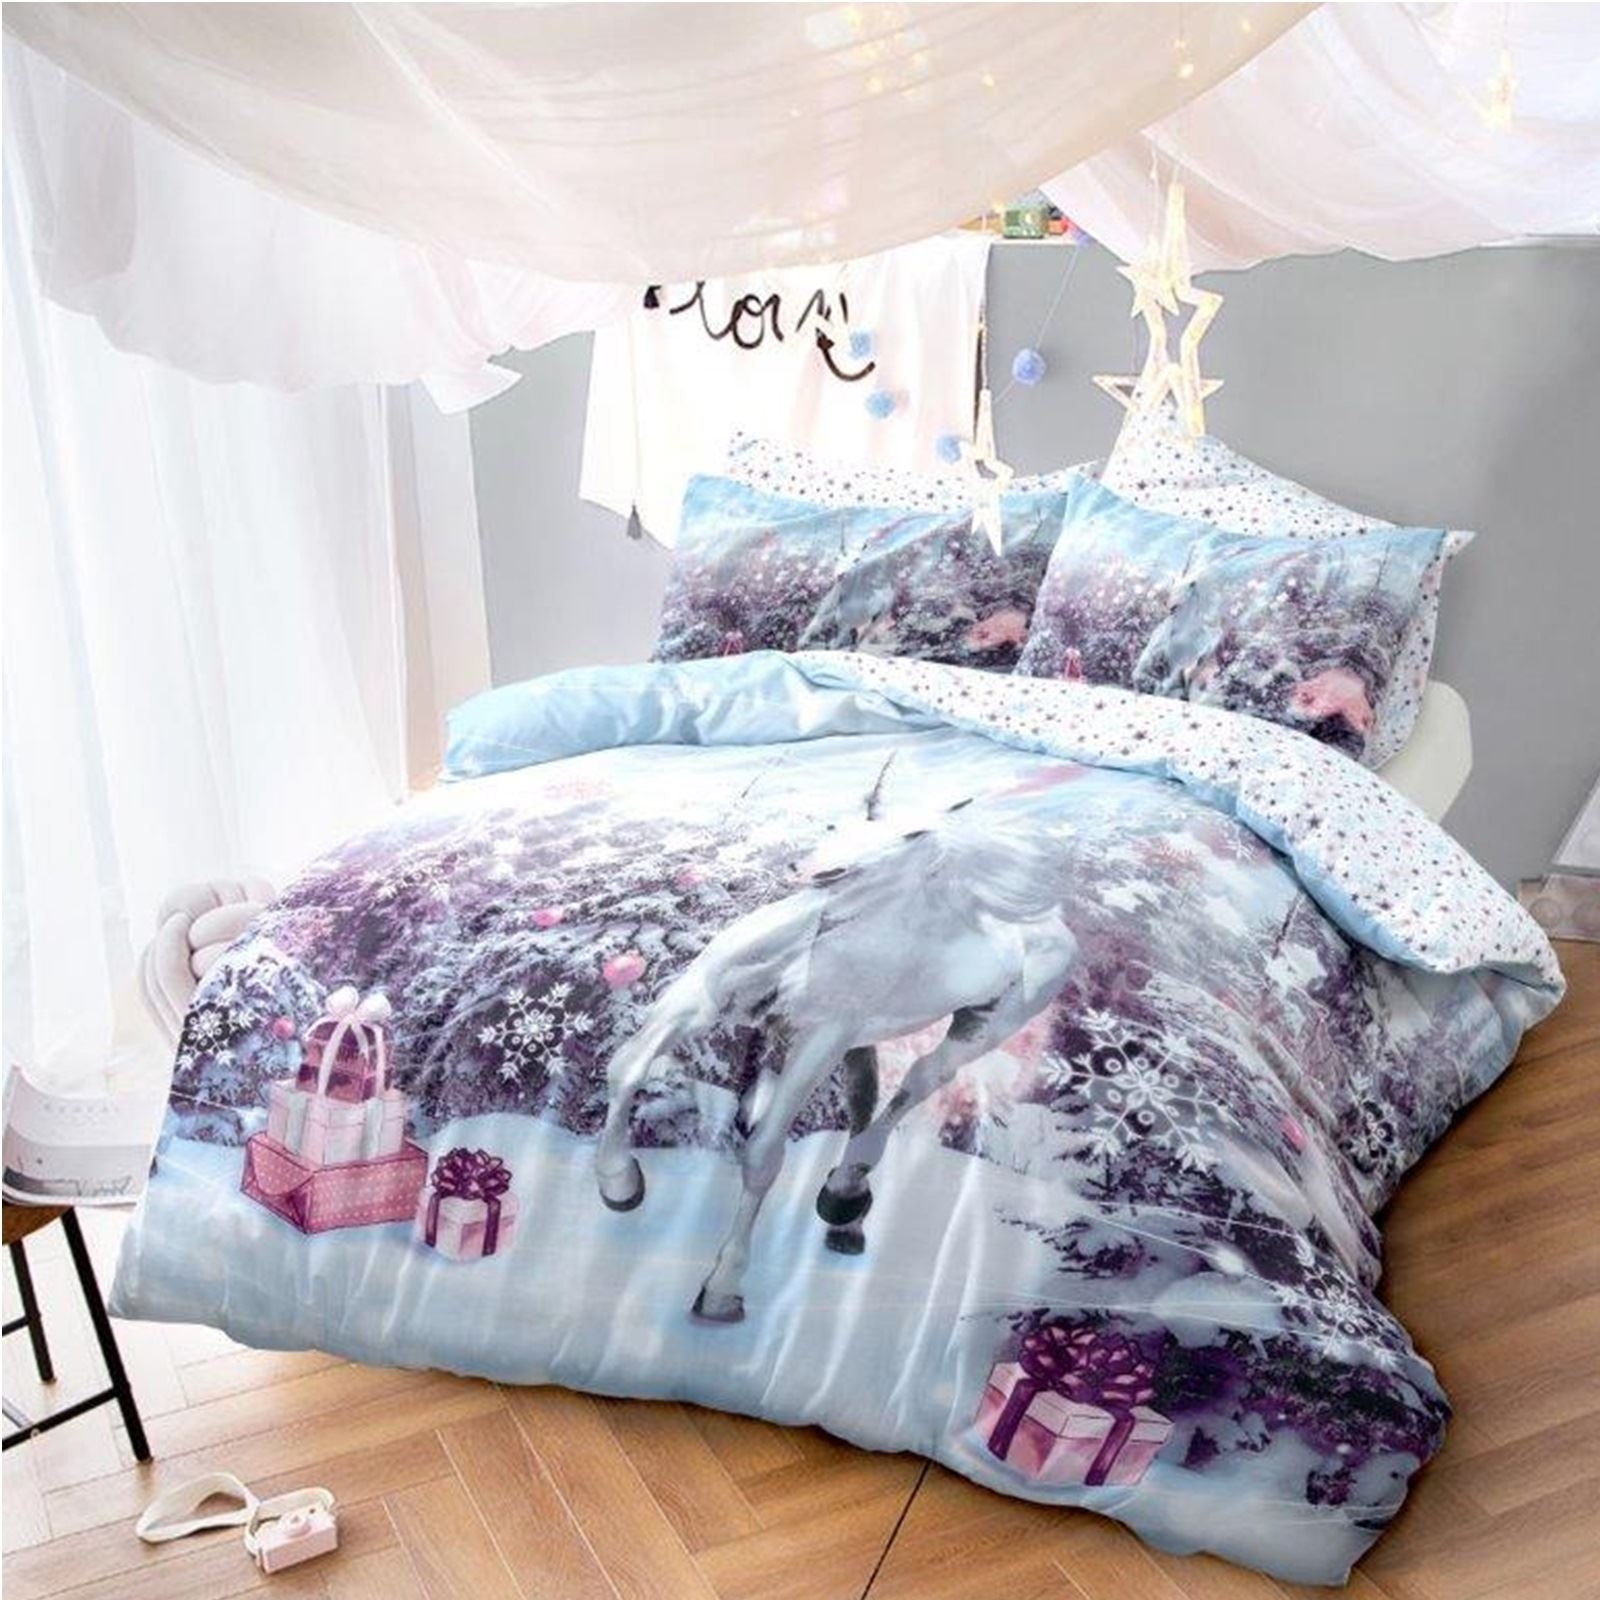 no l enfants ensemble de couette lit festive housse bonhomme neige p re elfe ebay. Black Bedroom Furniture Sets. Home Design Ideas